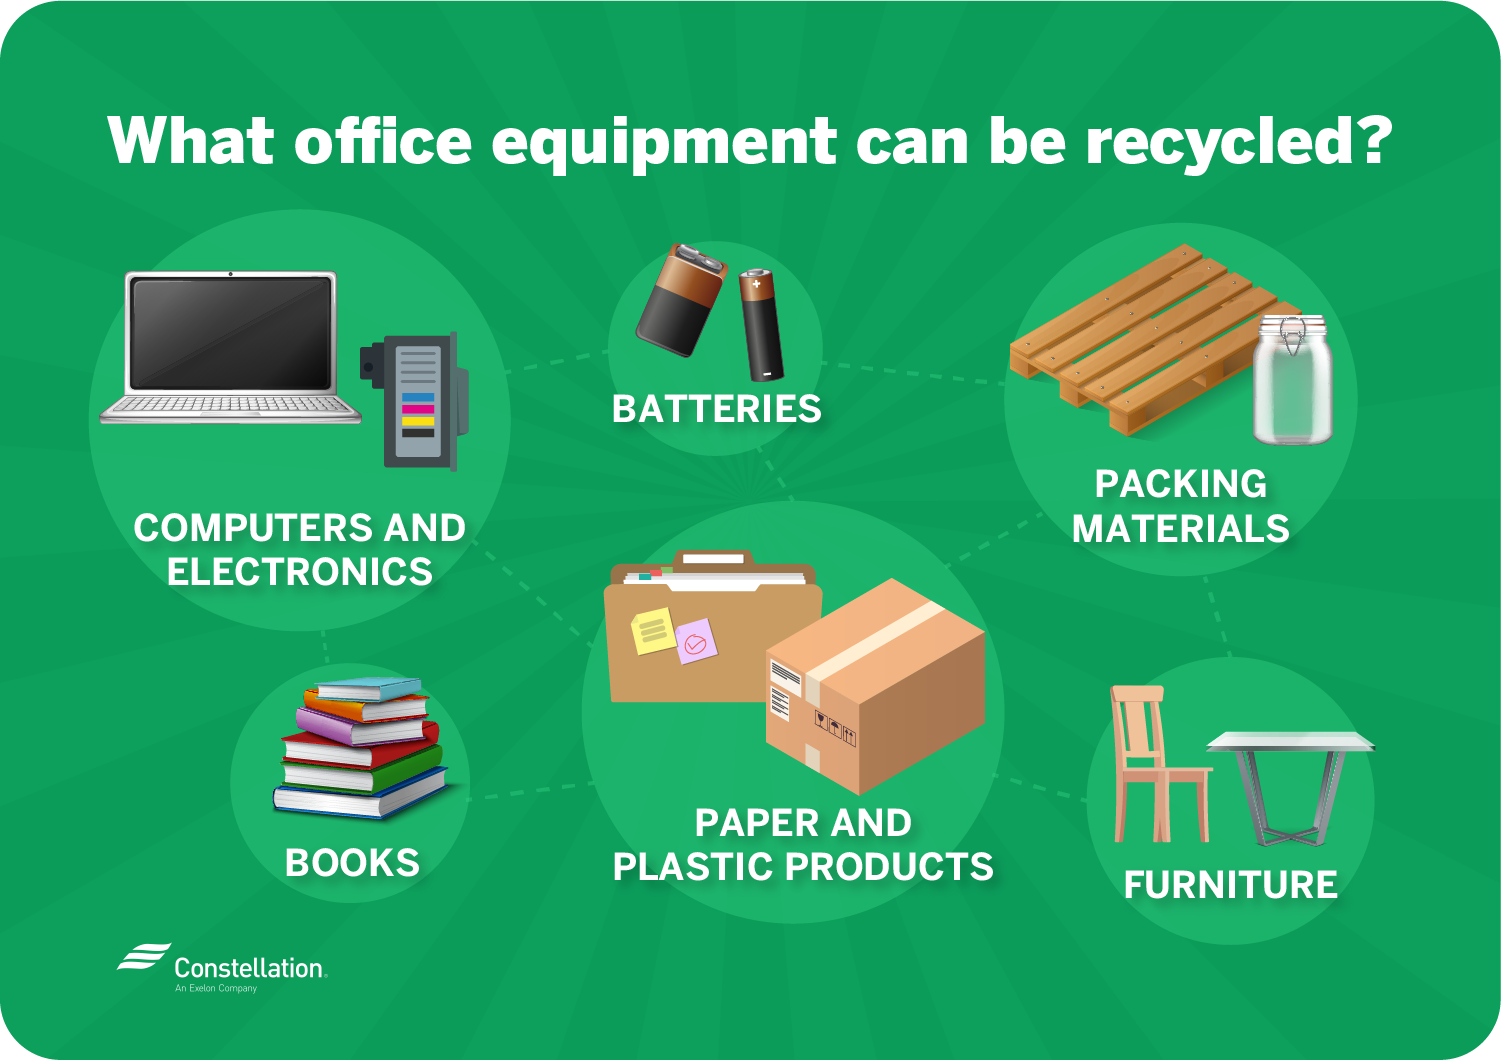 What office equipment can be recycled?